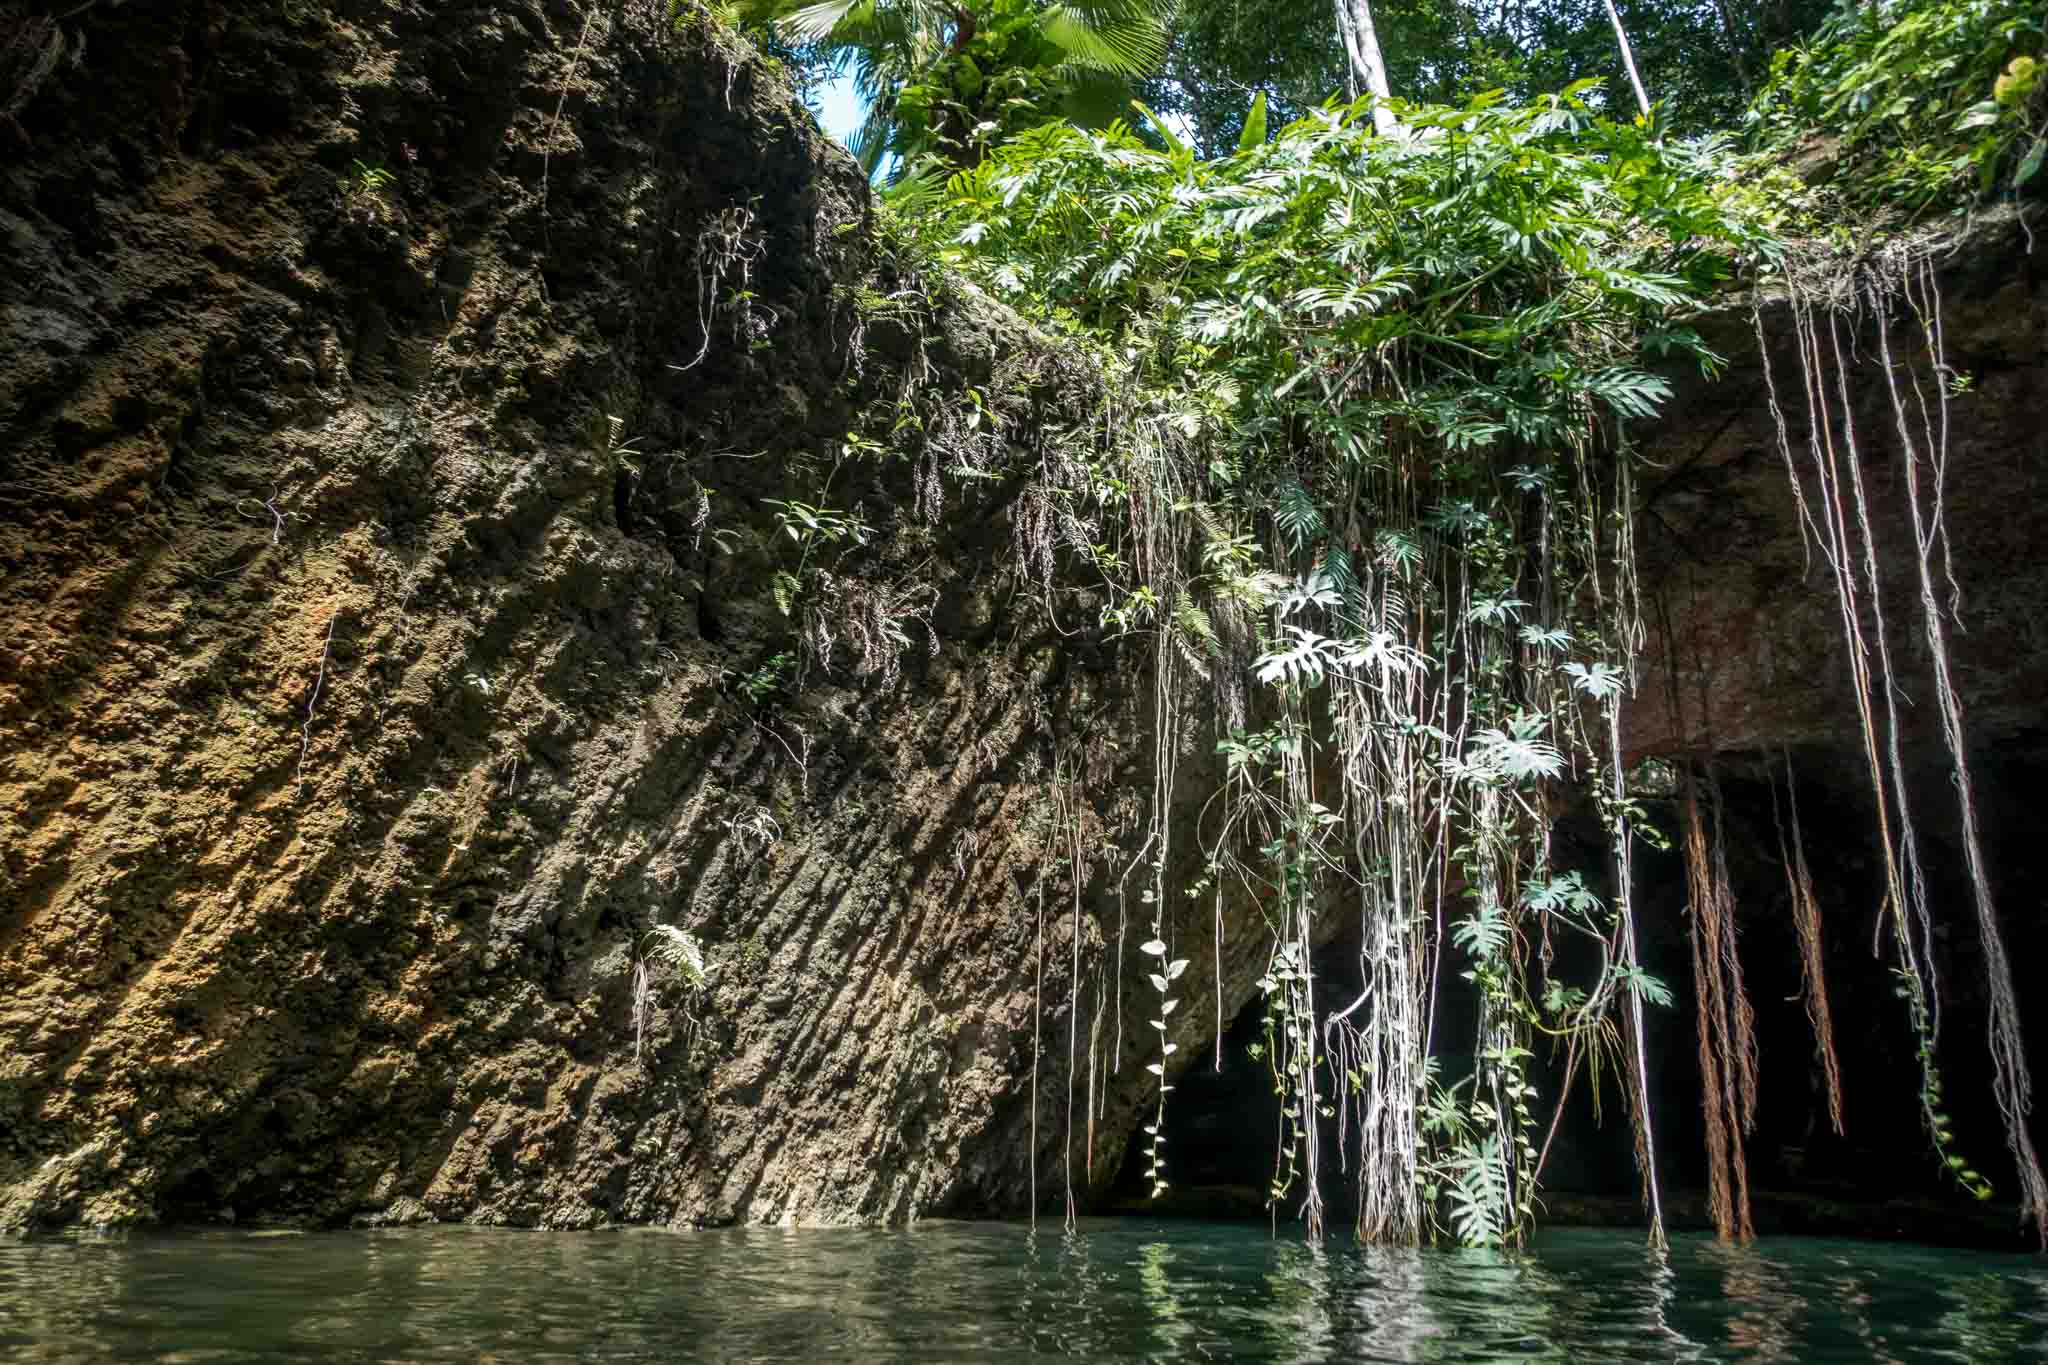 Plants and vines on the walls of a cenote